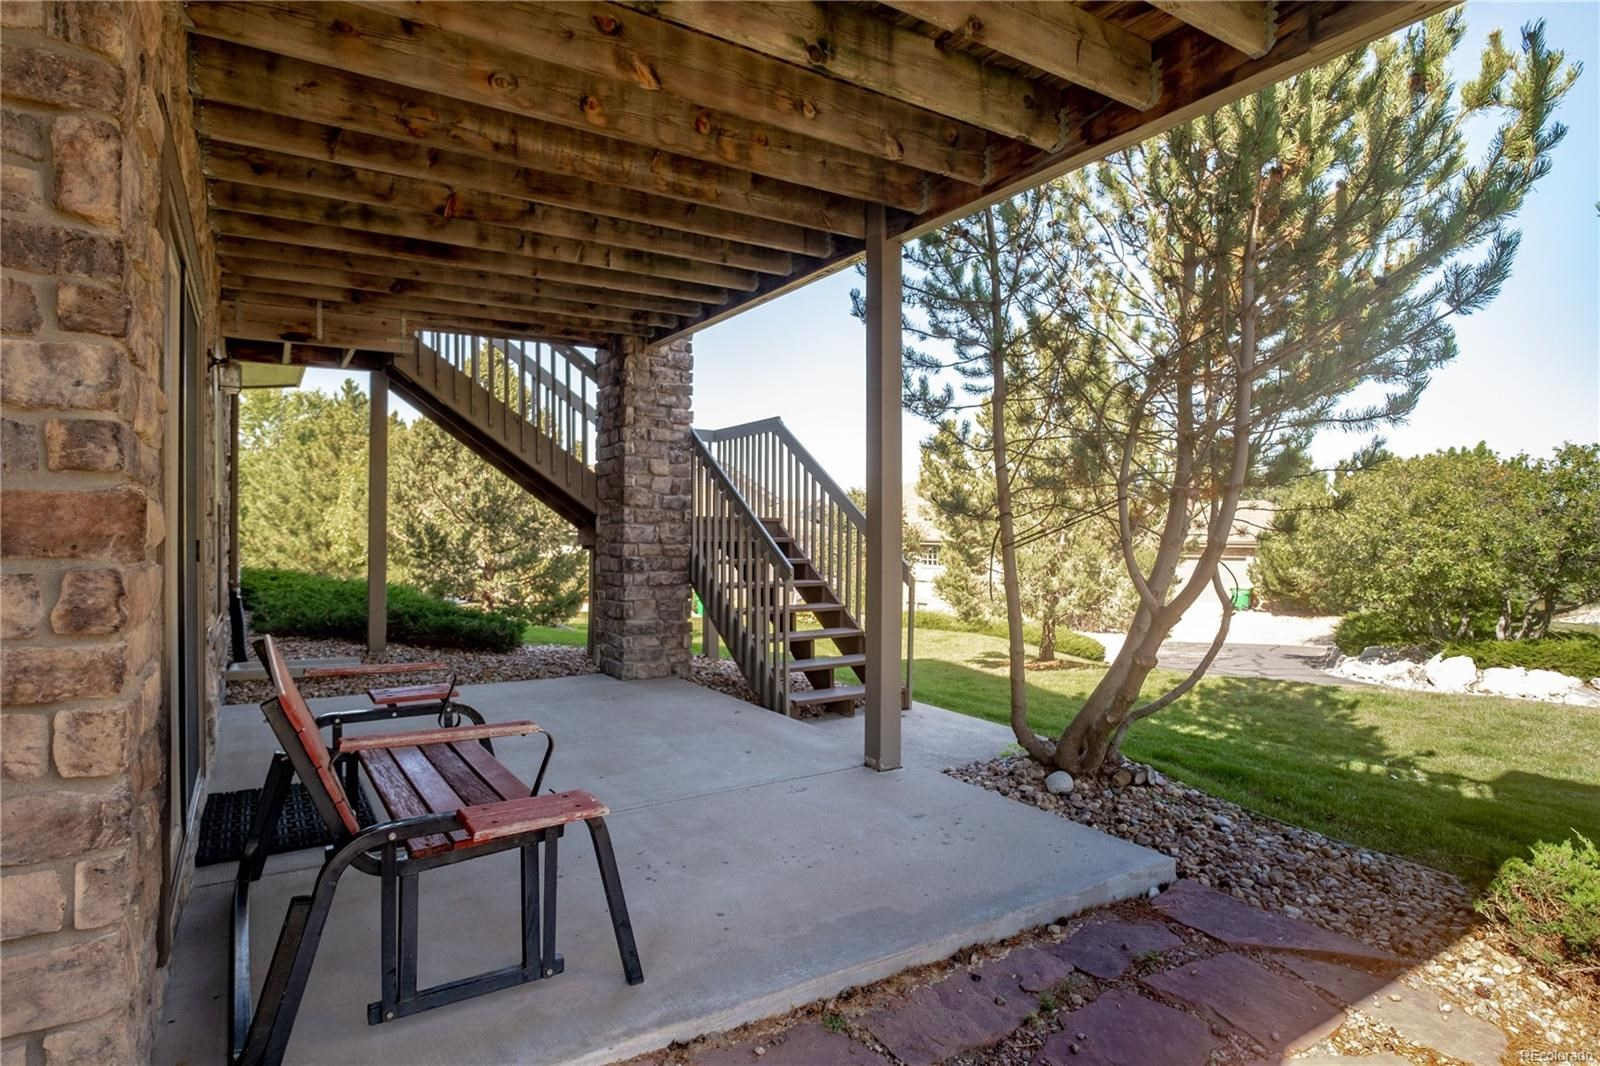 MLS# 9162651 - 36 - 51 Toppler Court, Castle Pines, CO 80108